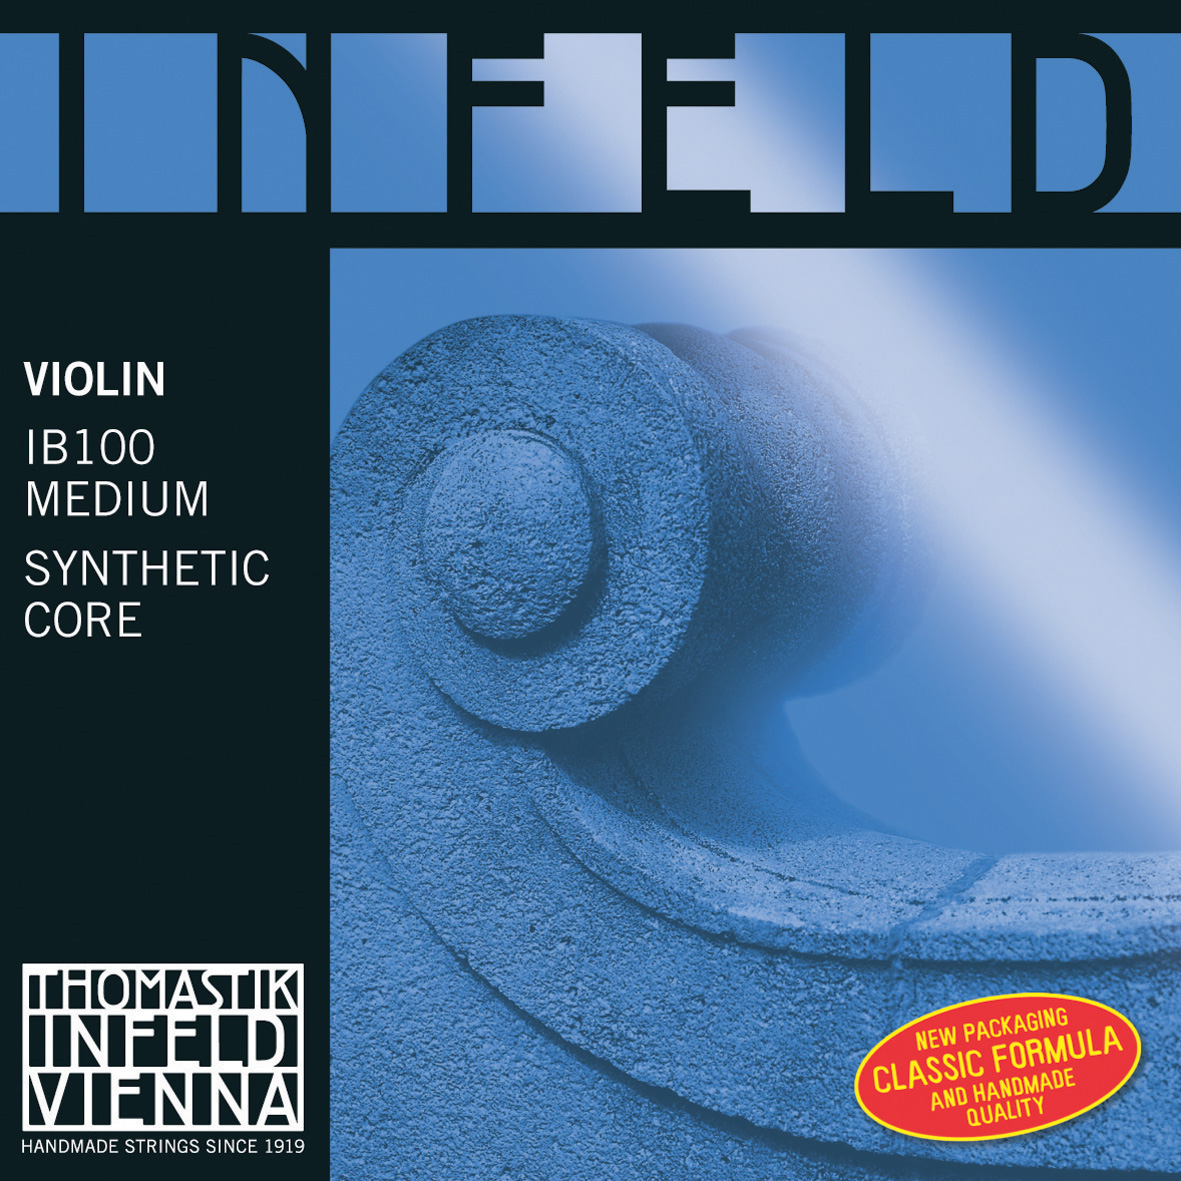 Infeld Blue Thomastik Infeld Strings